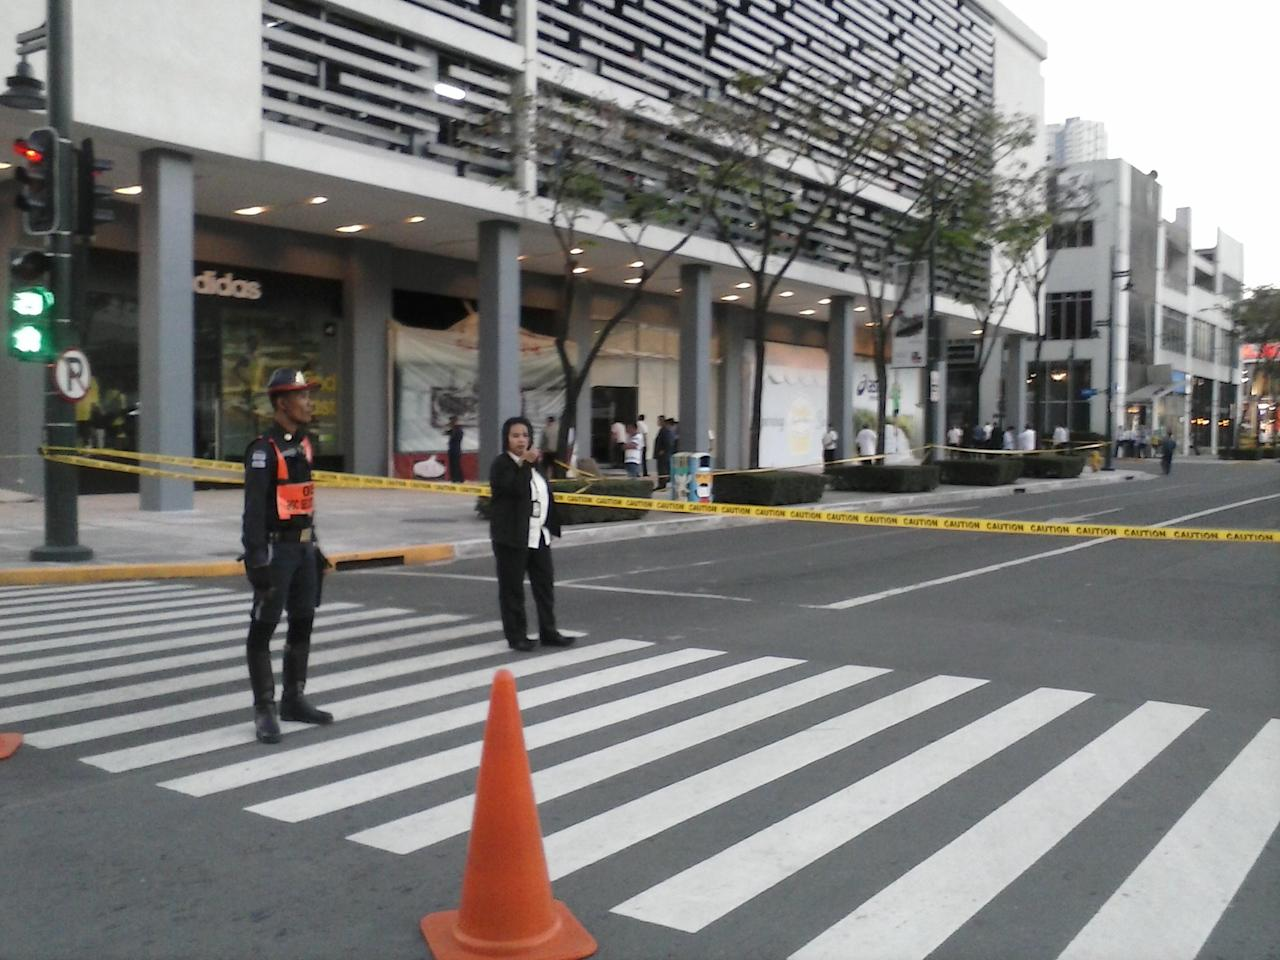 Authorities close the blast site in Bonifacio Global City, Taguig to the public. Photo by Sid Ventura